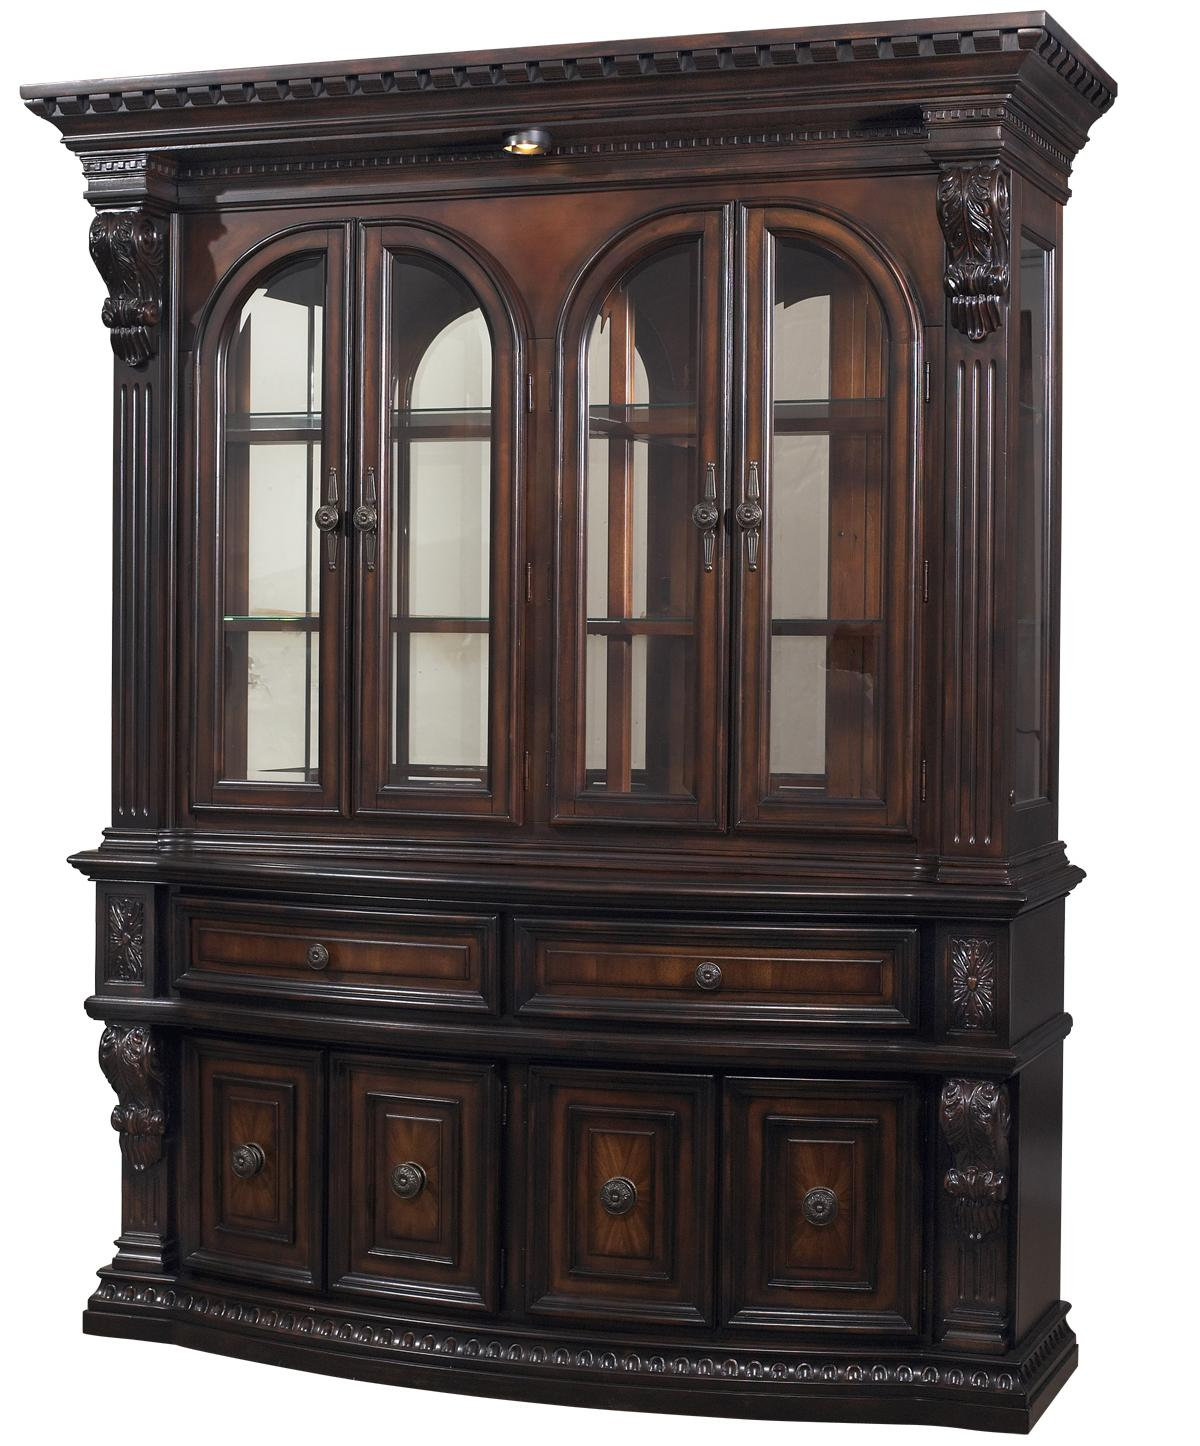 Fairmont designs grand estates china cabinet hutch royal